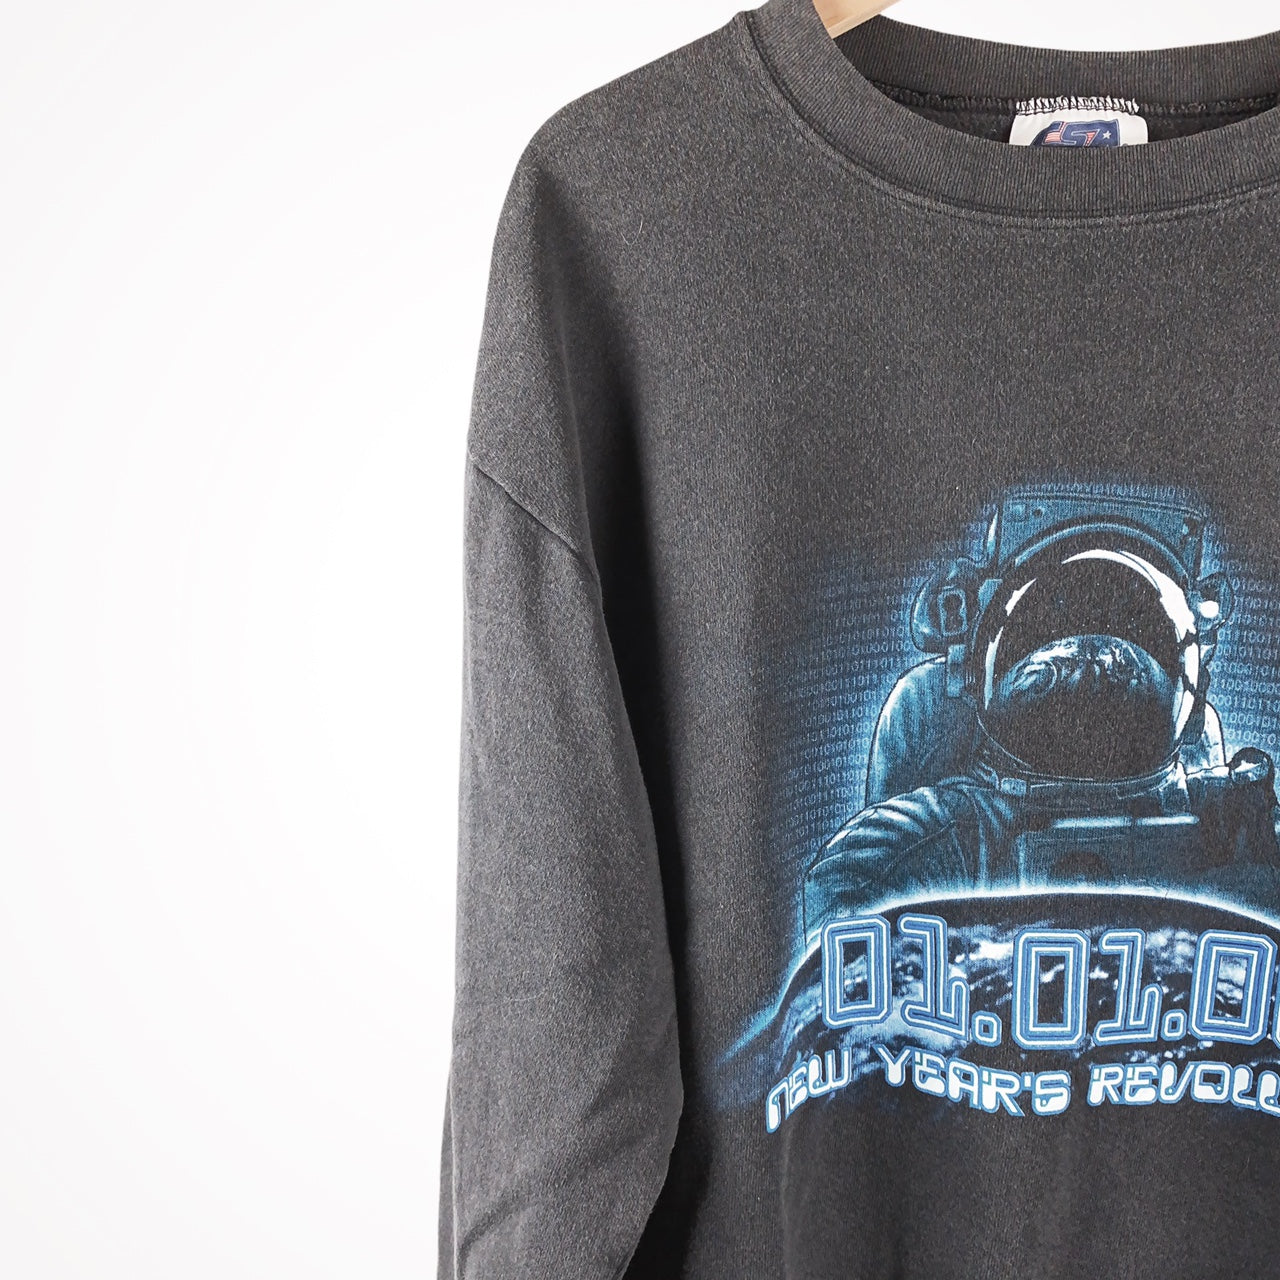 Vintage 2000 Astronaut New Years Revolution Binary Pullover Crewneck Sweatshirt